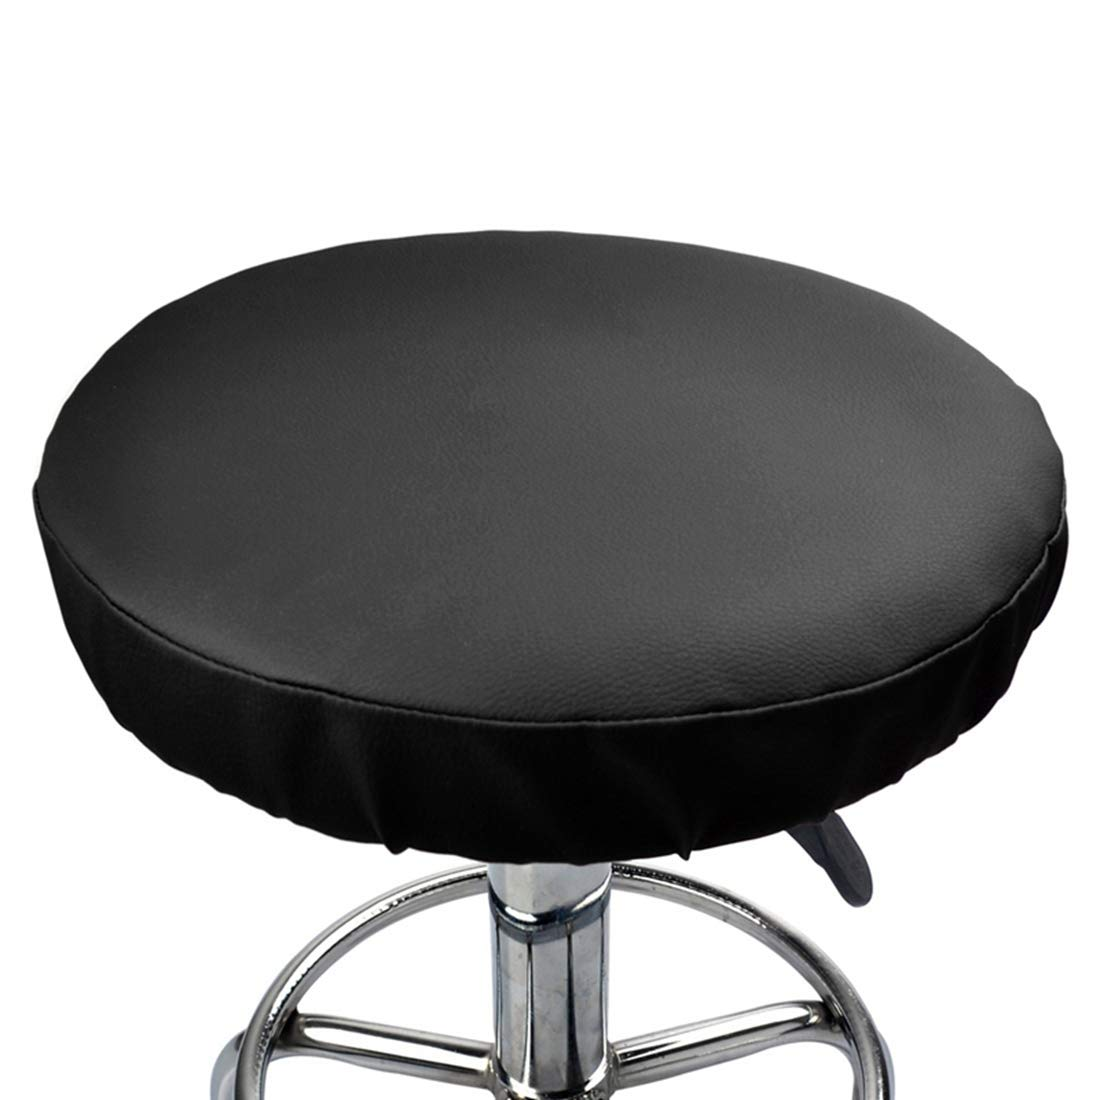 Enerhu Round Leather Soft Stool Cover Bar Stool Cover Cushion Chair Slipcover for Home Cafe Bookstore Restaurant Library Office Black 42cm/16.53inch